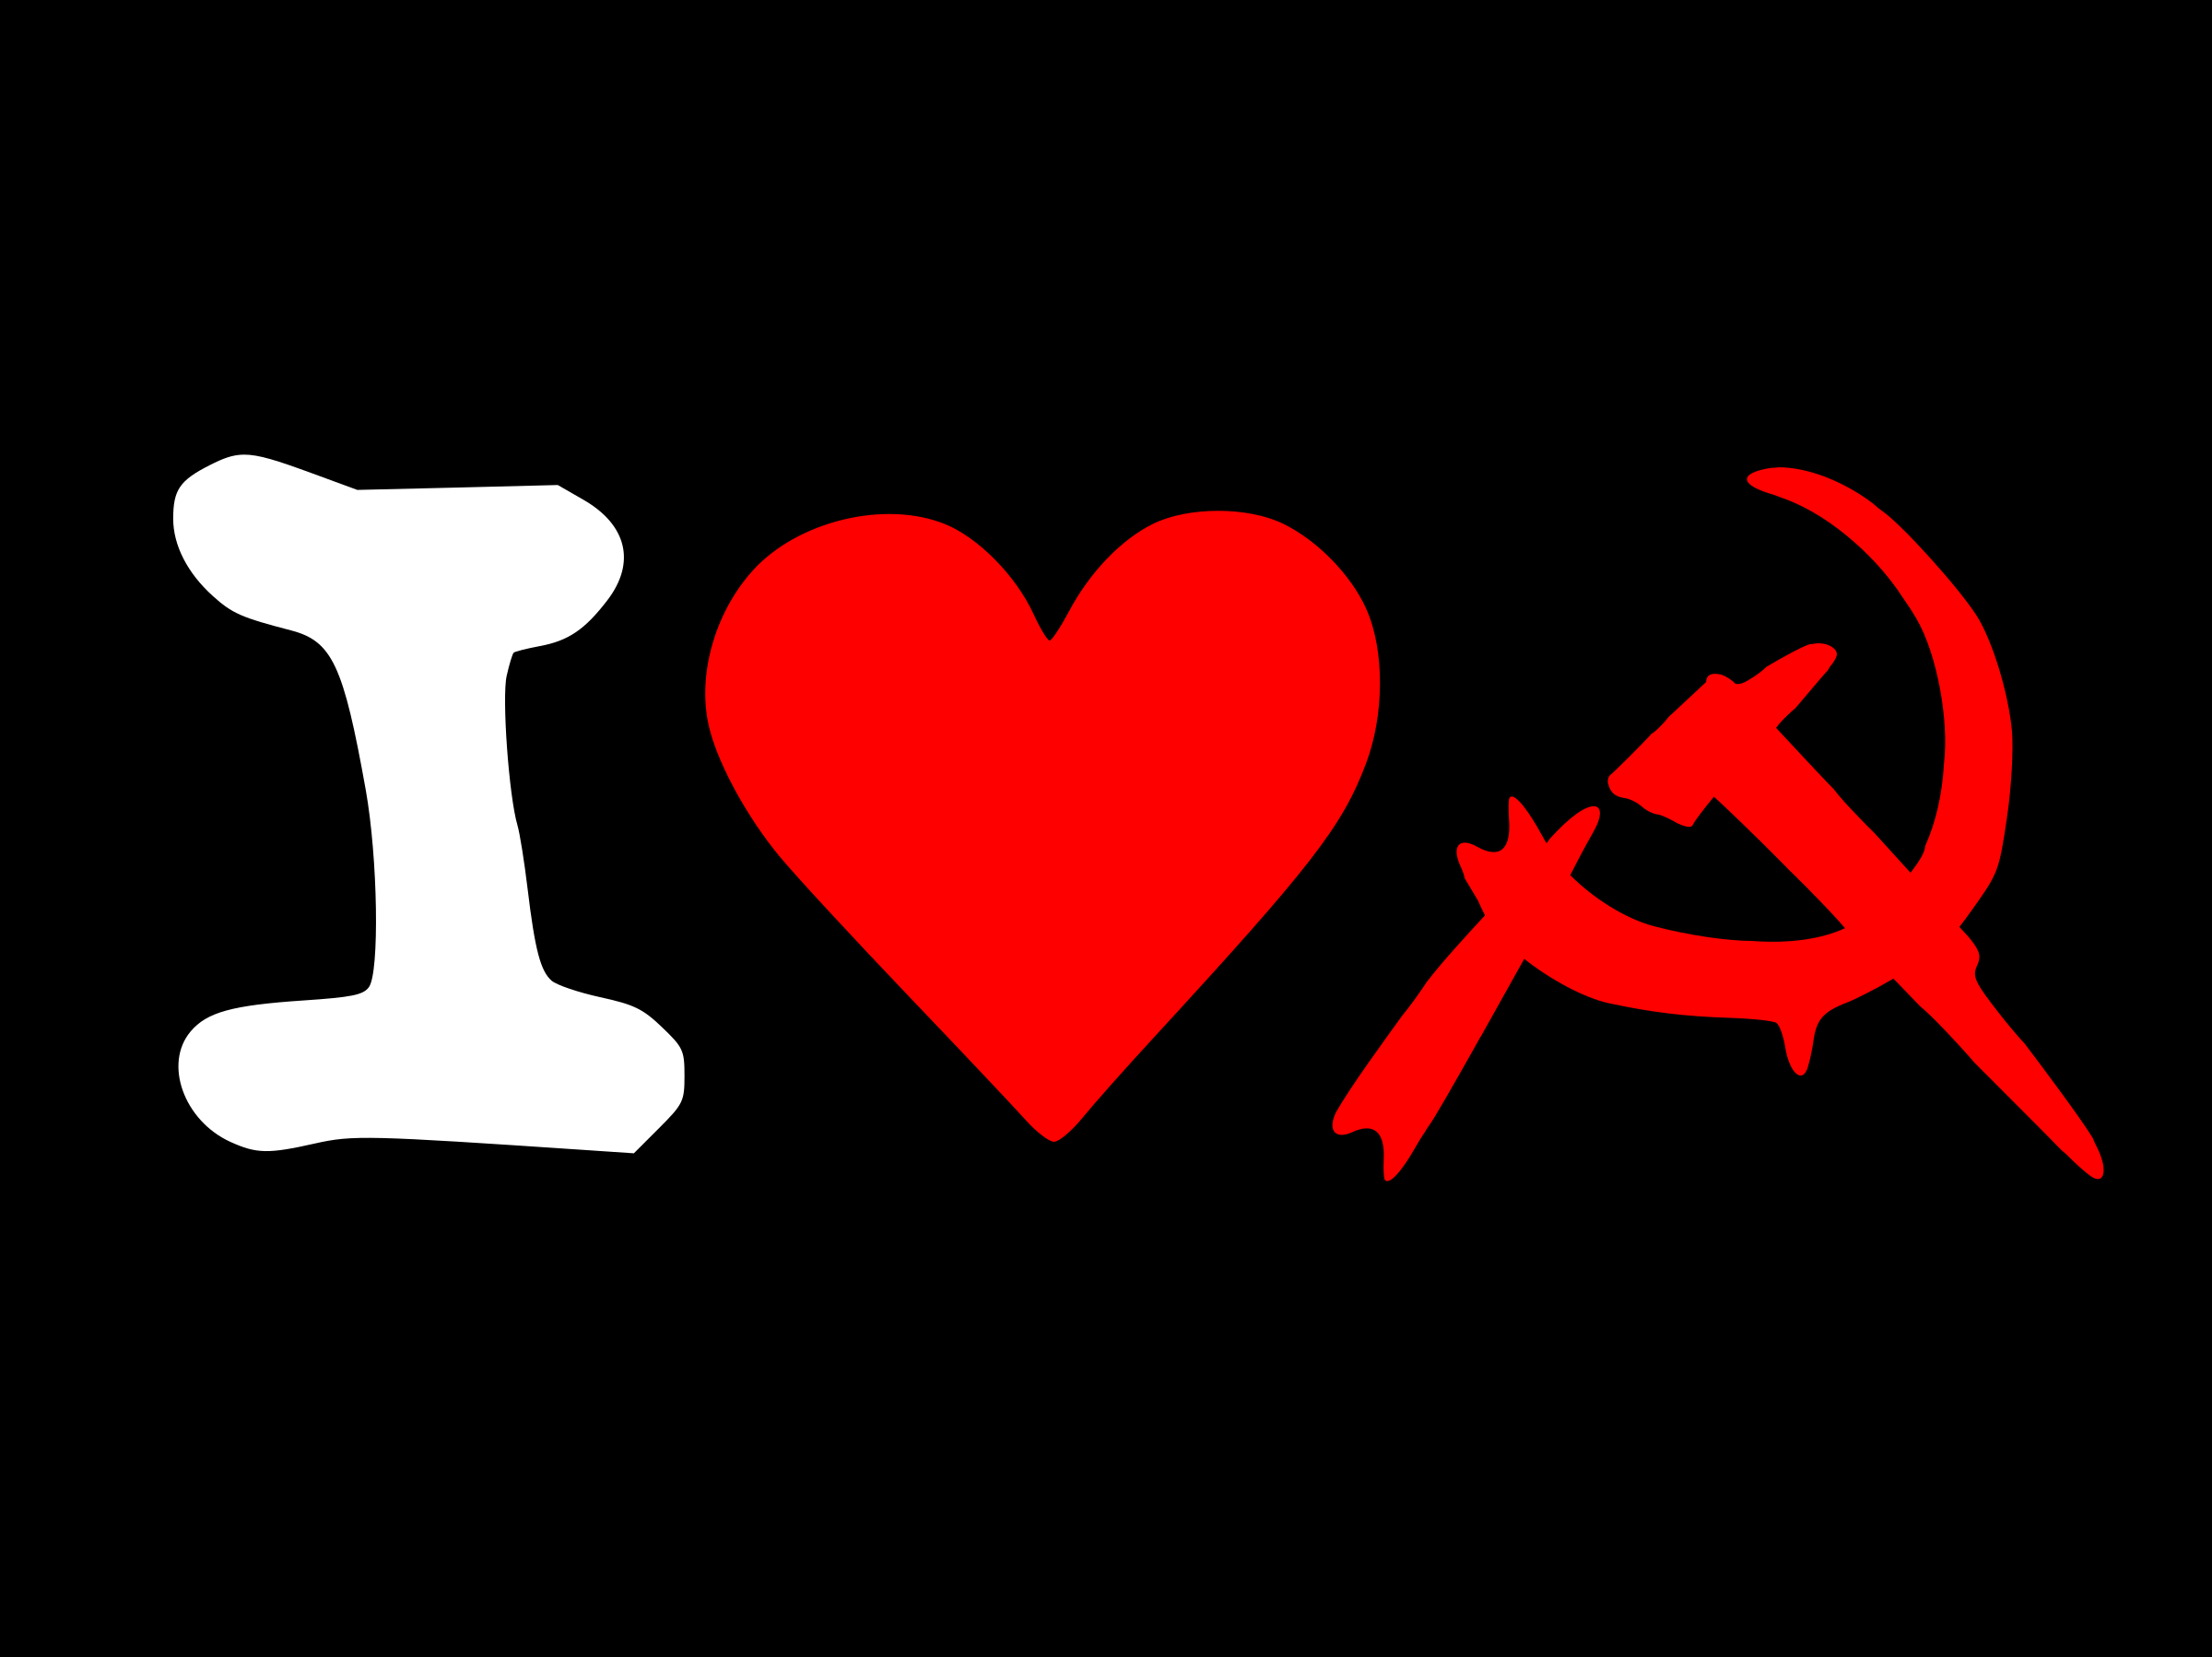 https://images.duckduckgo.com/iu/?u=https%3A%2F%2Fopenclipart.org%2Fimage%2F2400px%2Fsvg_to_png%2F166990%2Fi-love-hammer-and-sickle.png&f=1